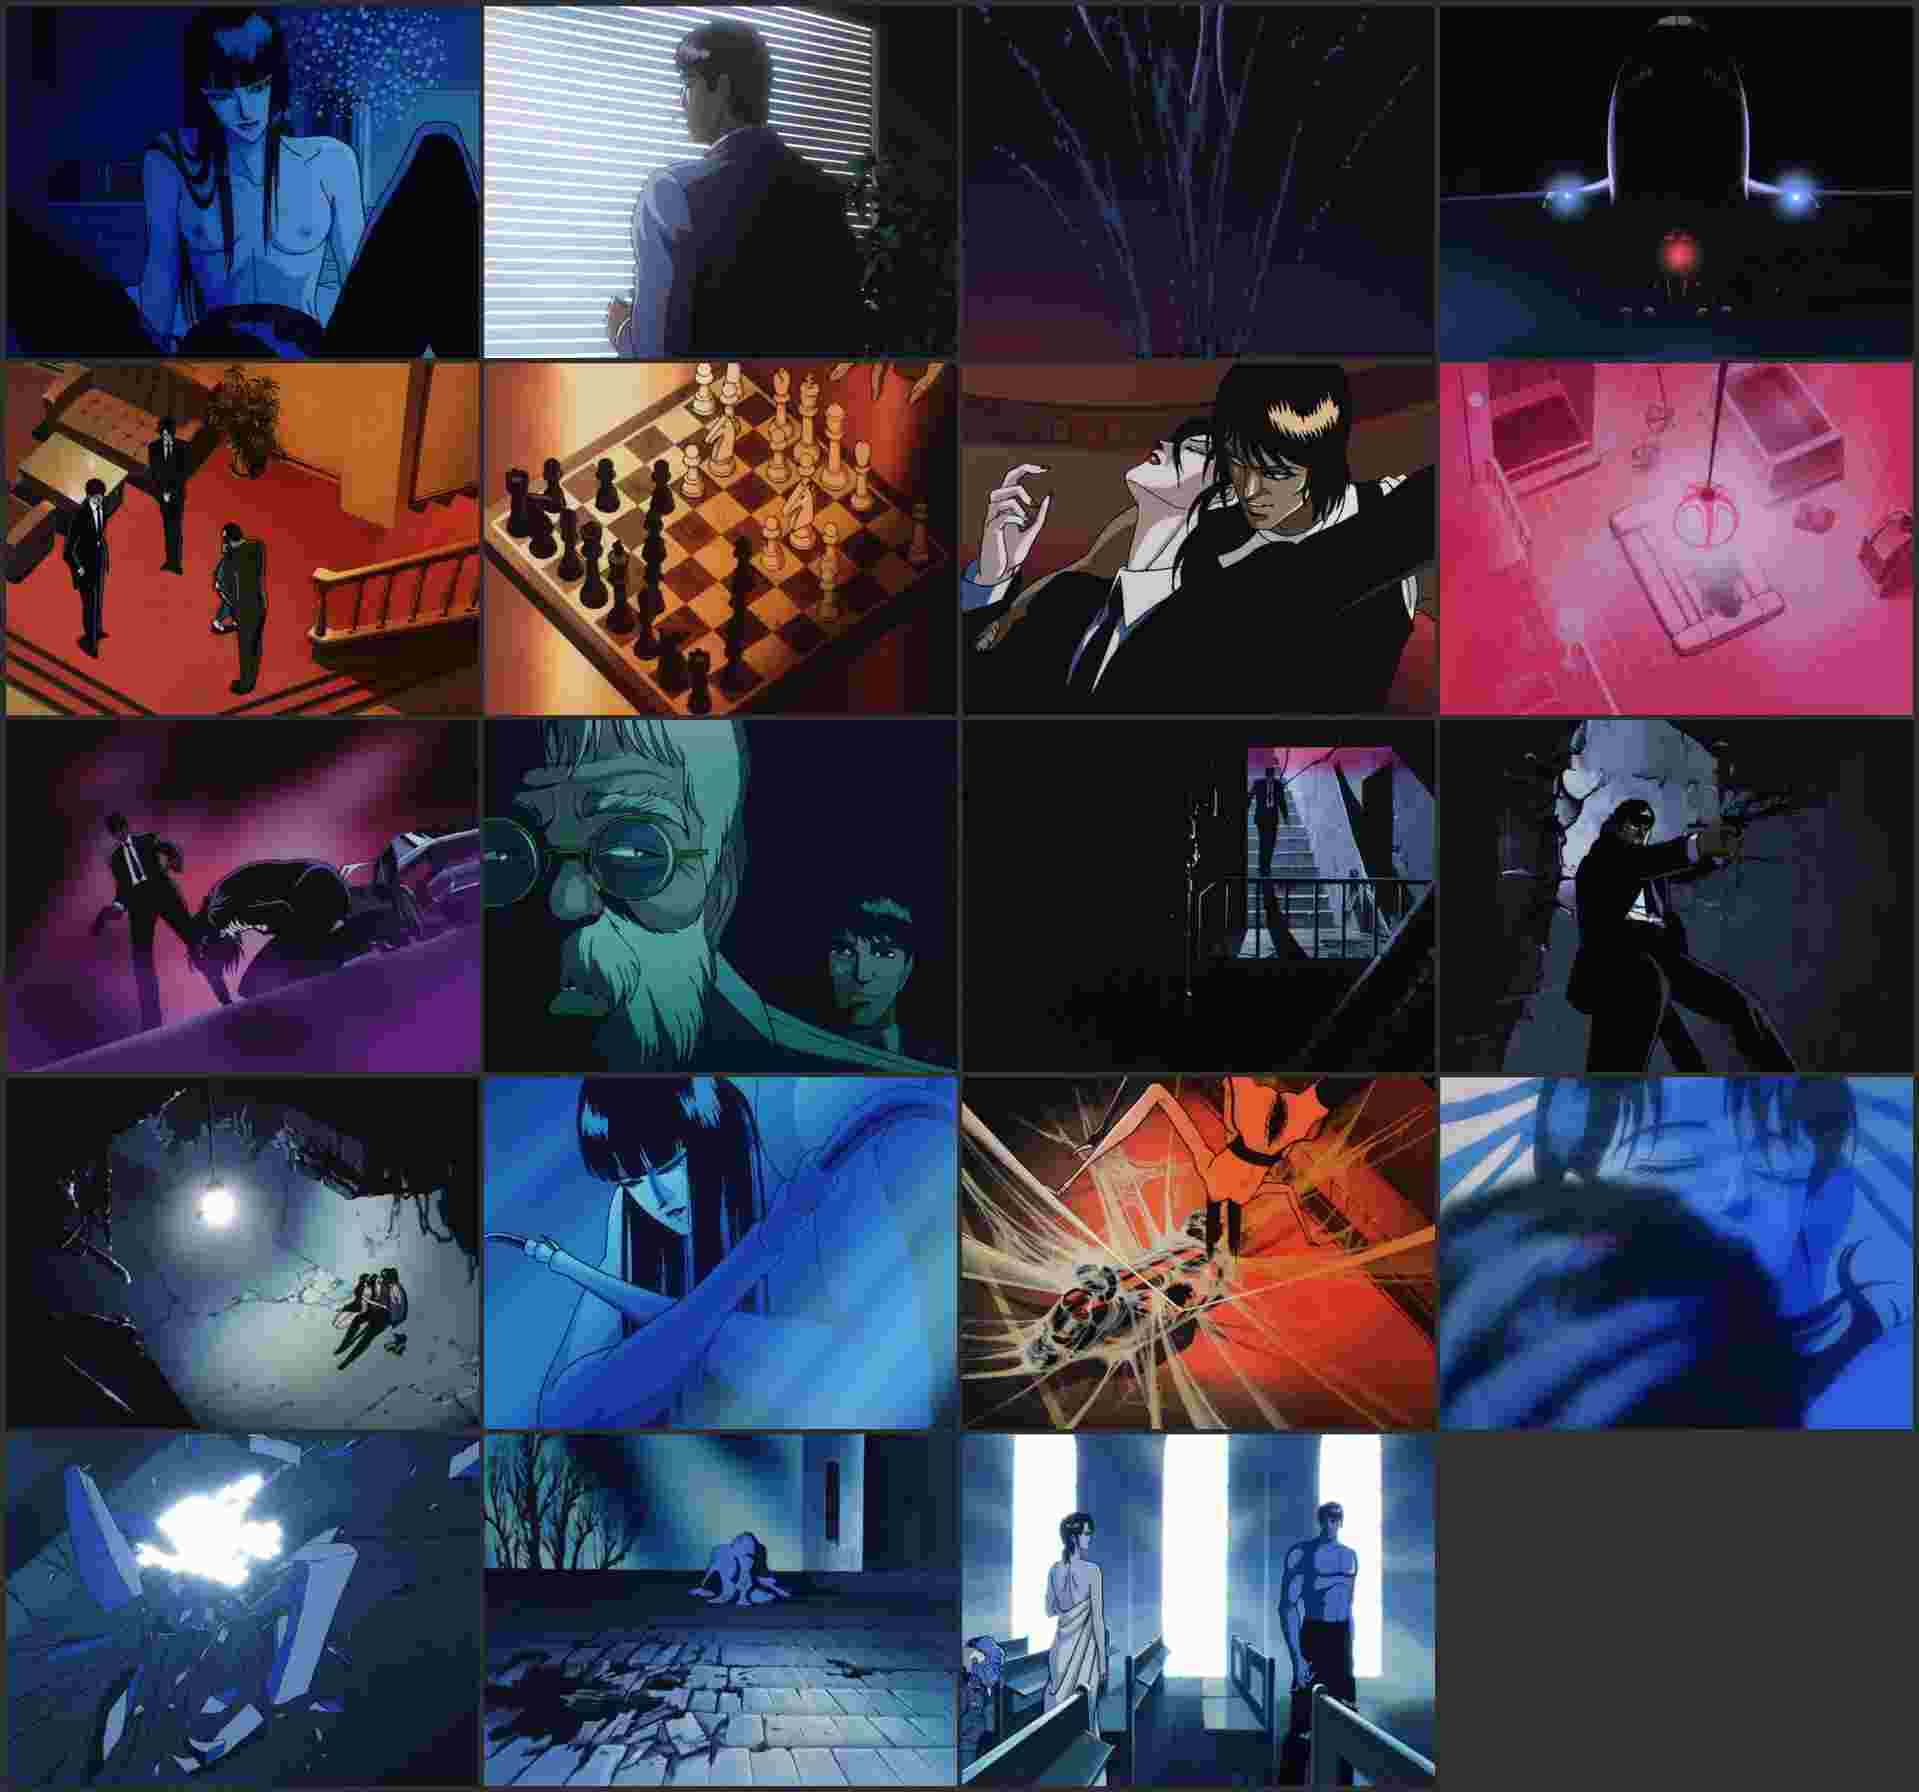 Wicked_City_1987_720p_BluRay_Download.ir.mp4